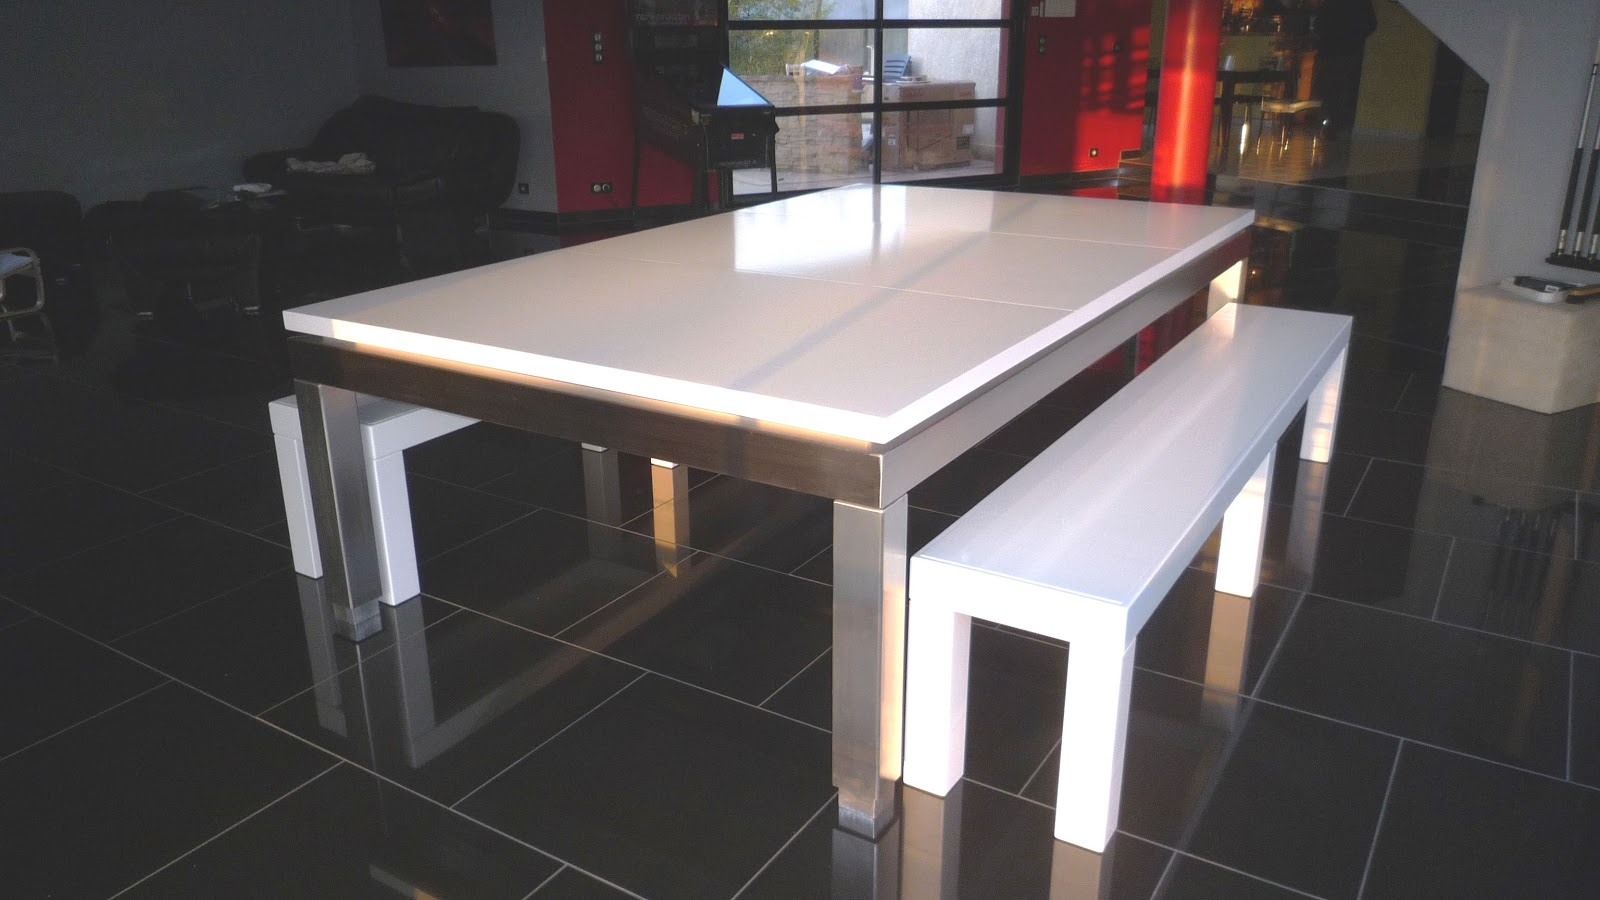 Fabricant De Billards Idees Design Et Decoration Dans L Univers Du